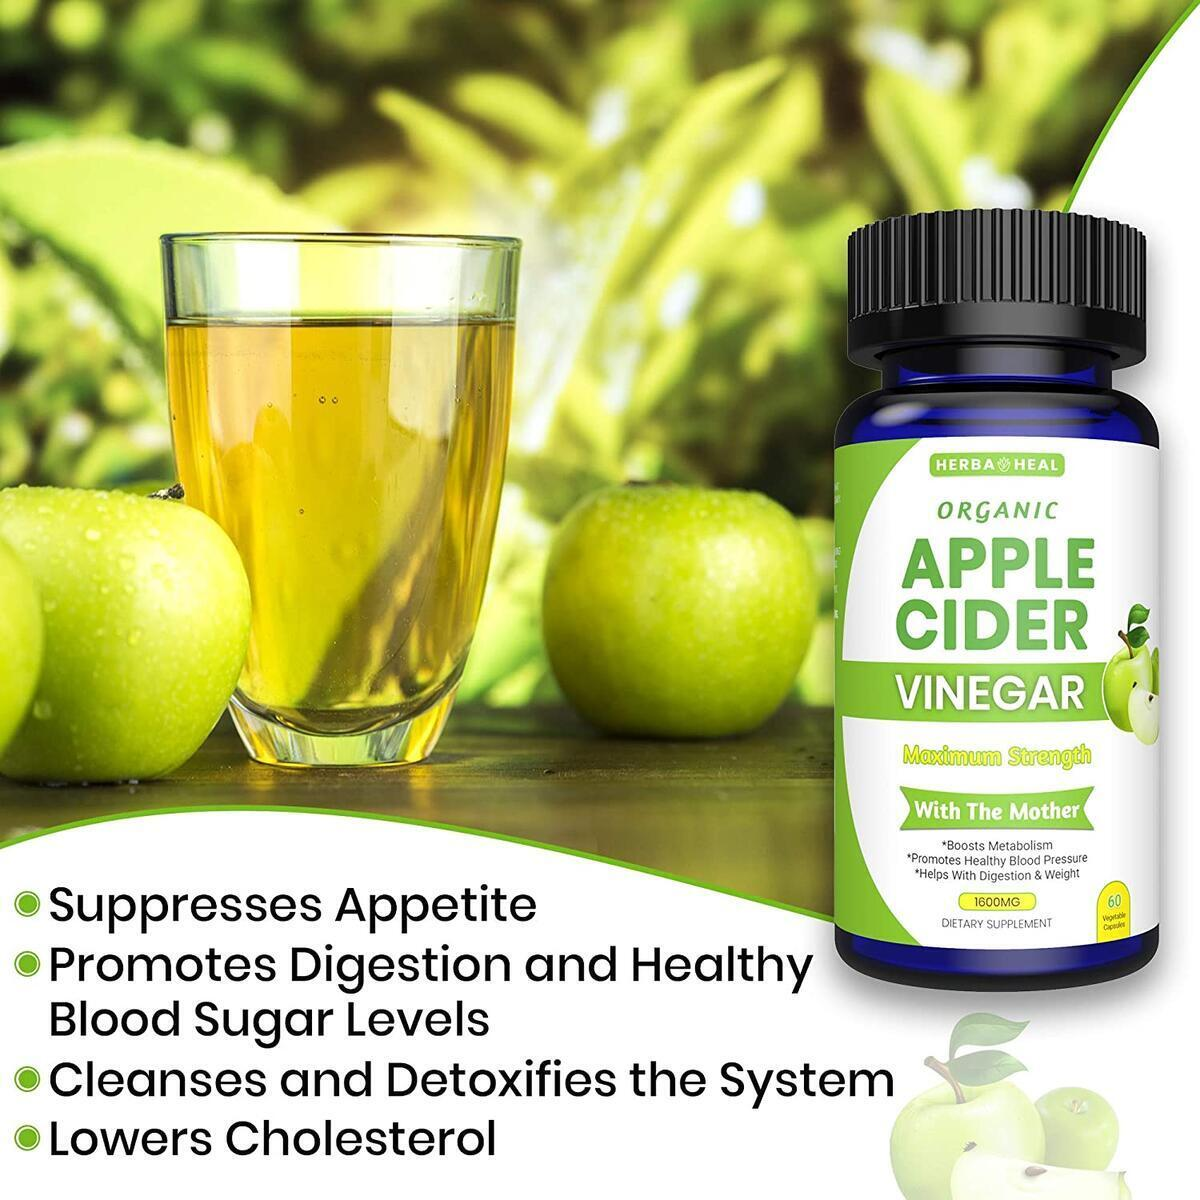 Organic Apple Cider Vinegar Capsules 1600MG with Lemon Powder, Inulin & Cayenne Pepper, All Organic Supplement - 1 Month Detox & Cleanse ACV Pills - Bloating Relief Metabolism Booster